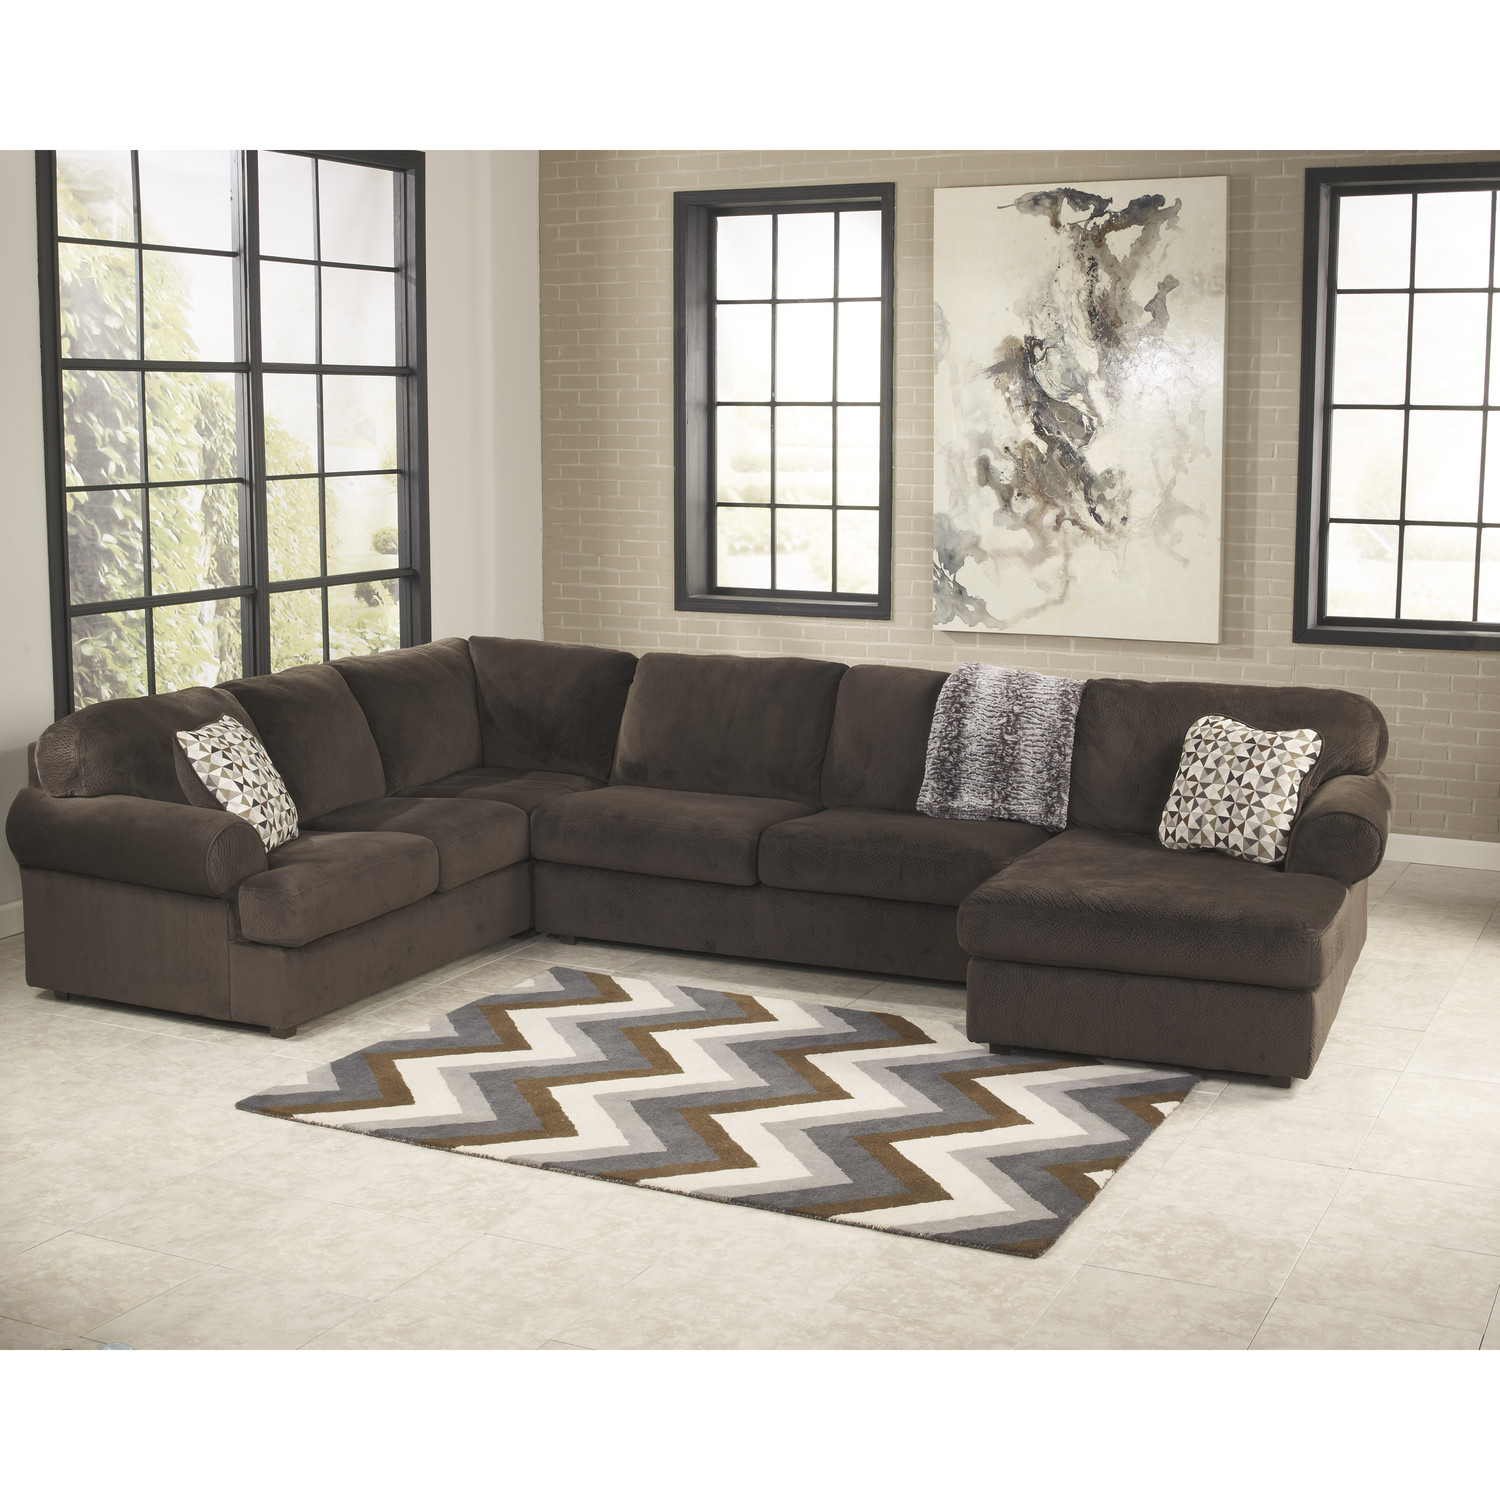 Sears Recliners | Reclining Rocking Chair | Patio Furniture Sears